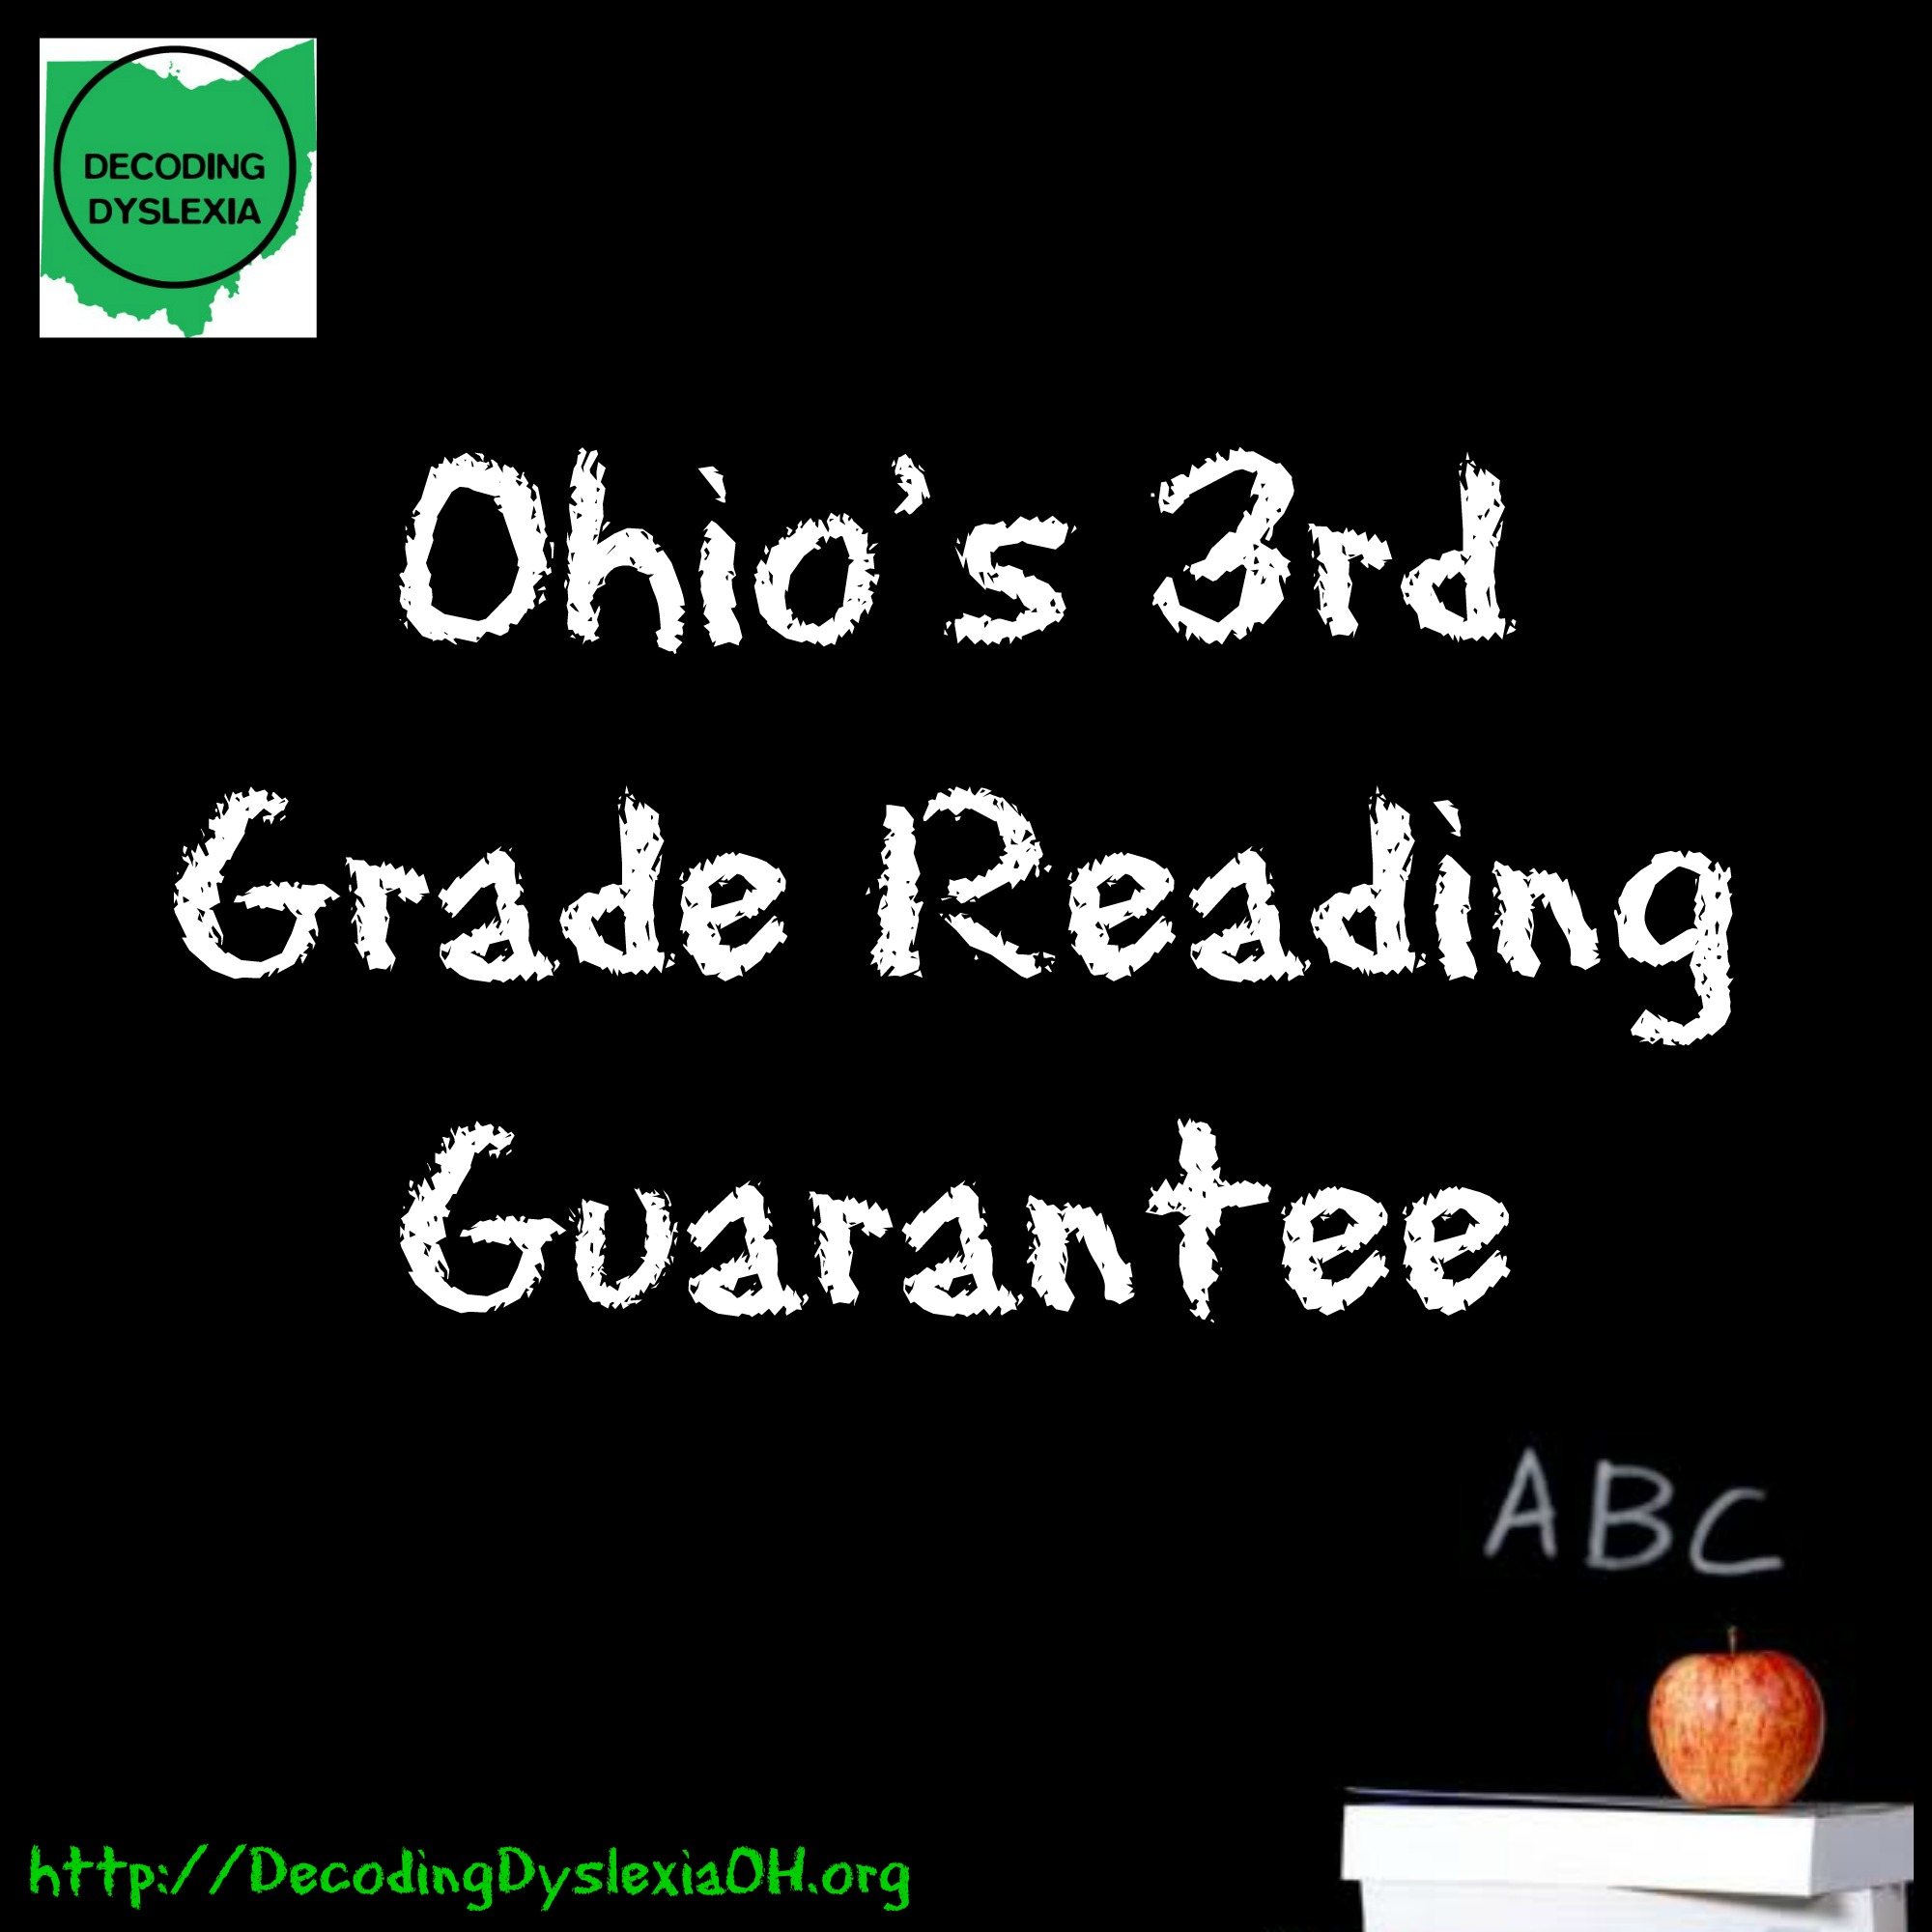 3rd Grade Reading Guarantee